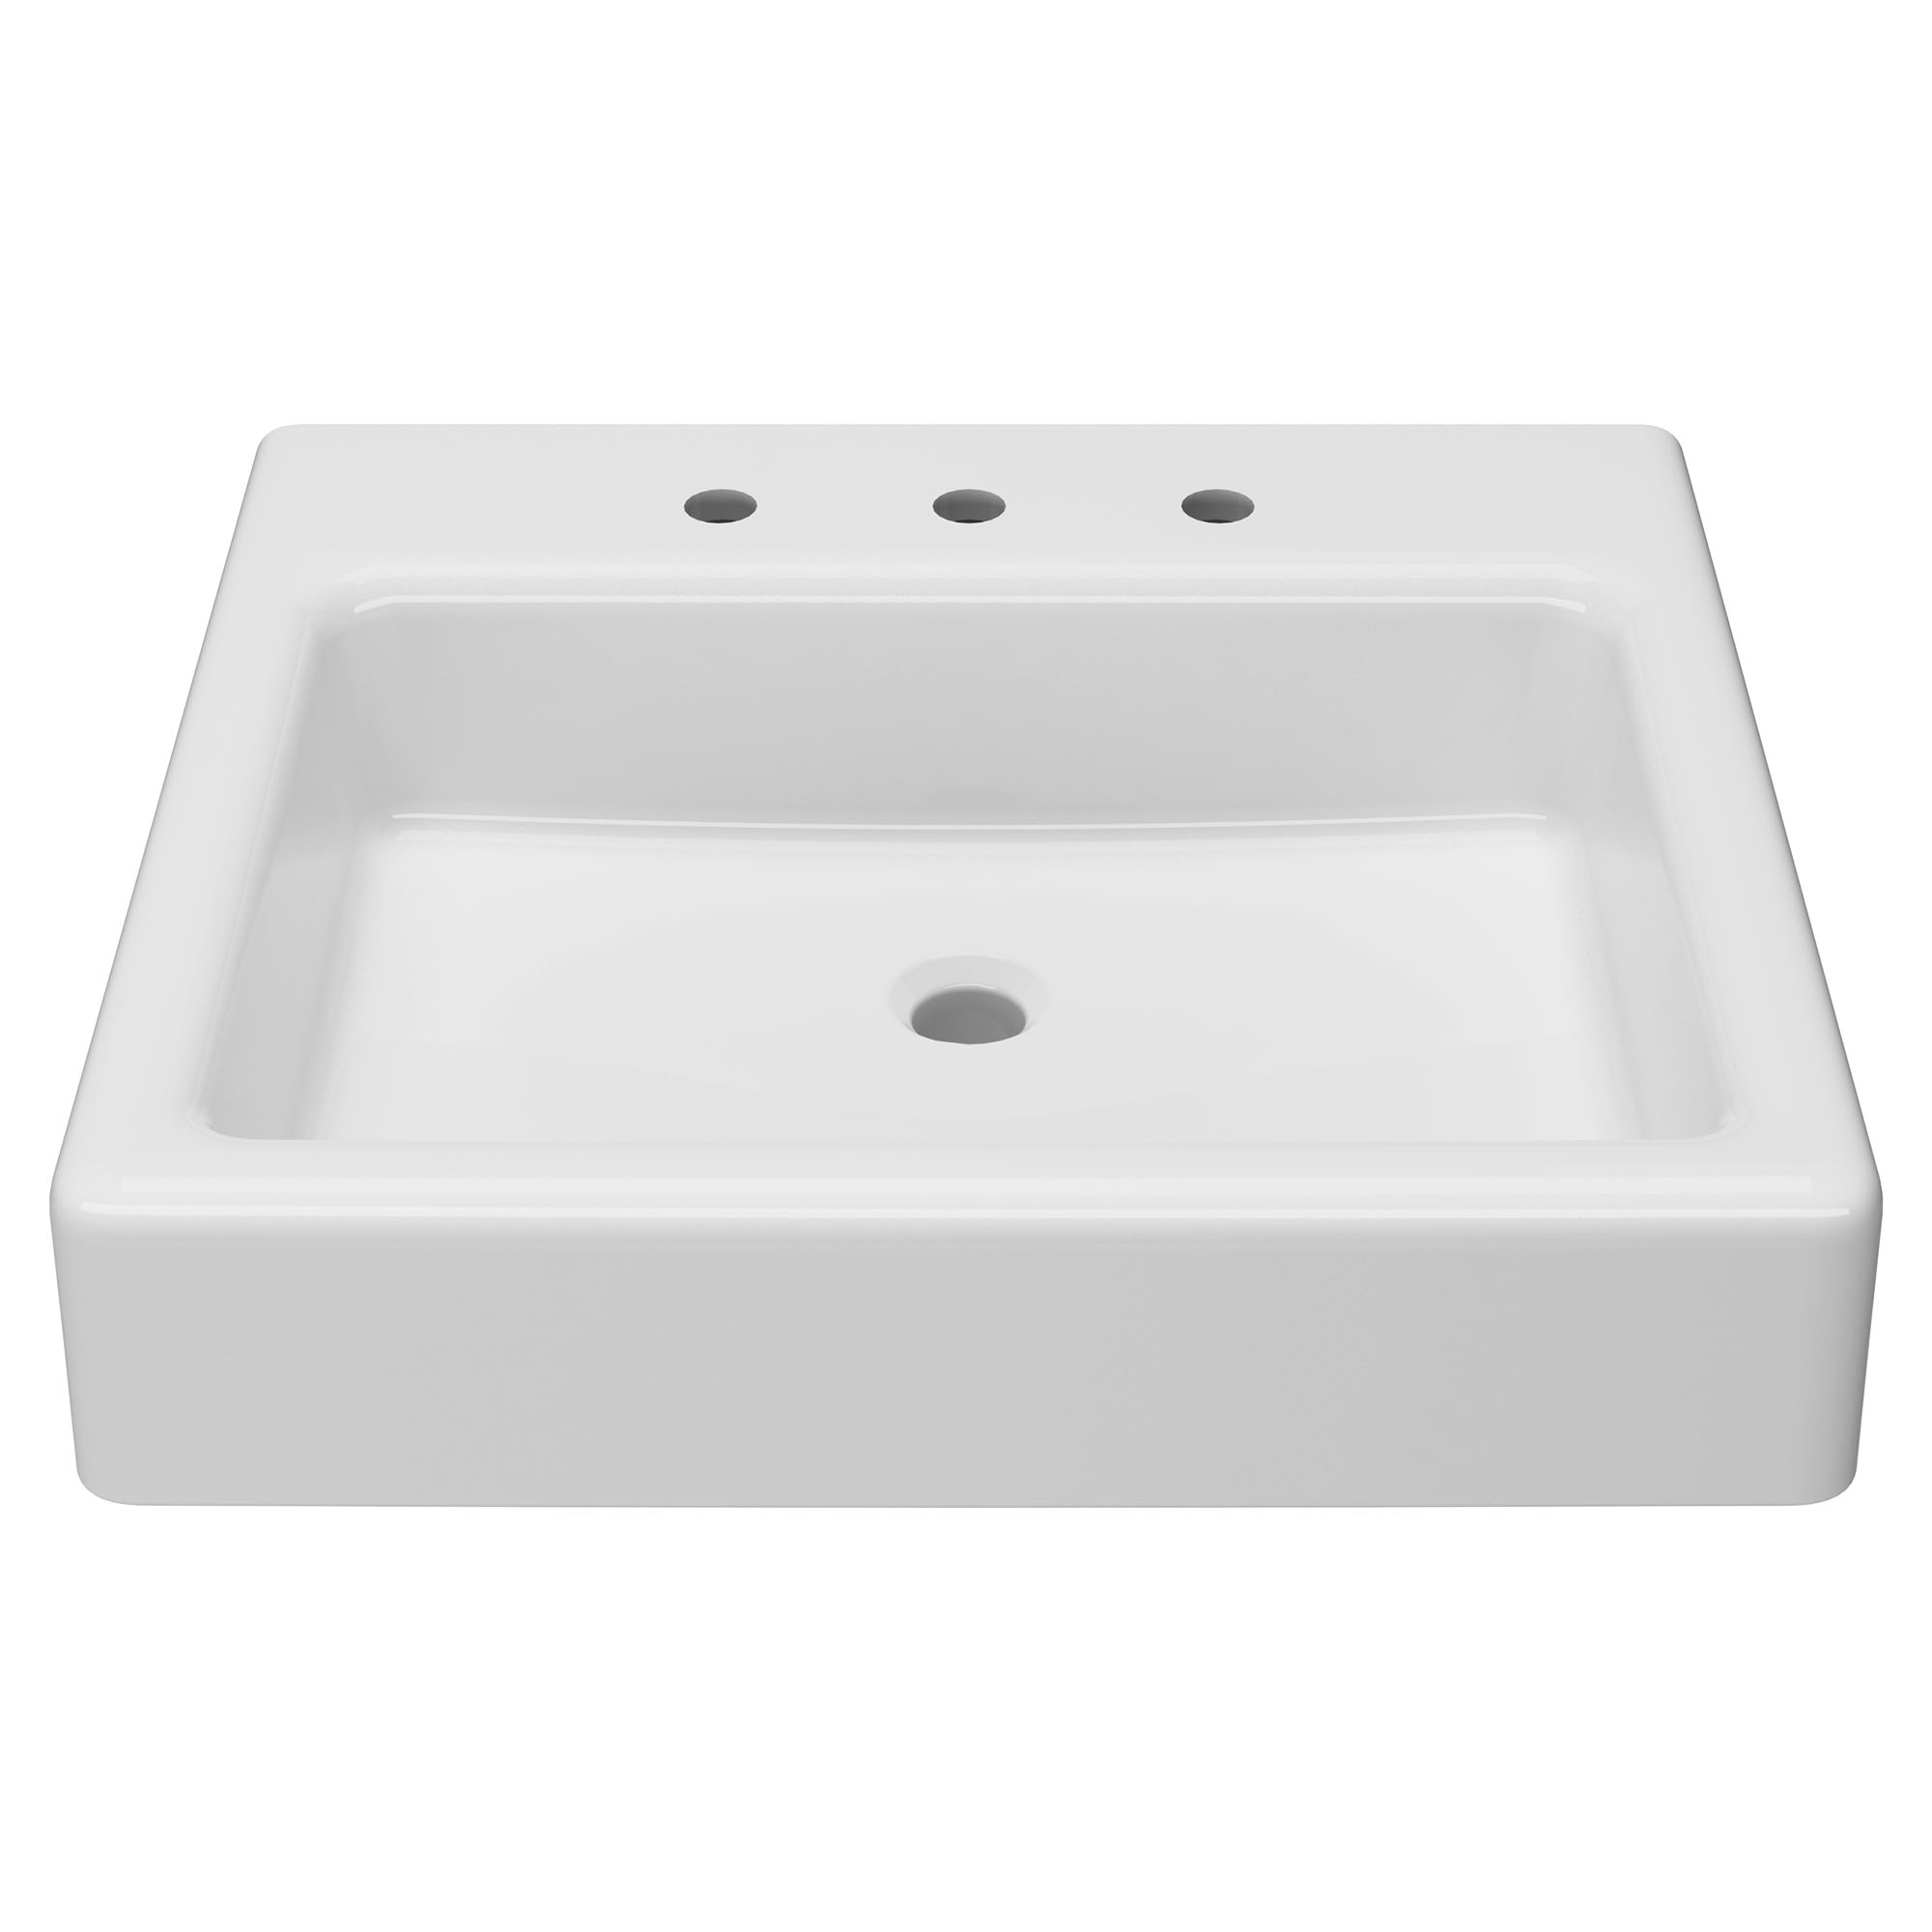 "Oak Hill 24"" Three-Hole Bathroom Sink"